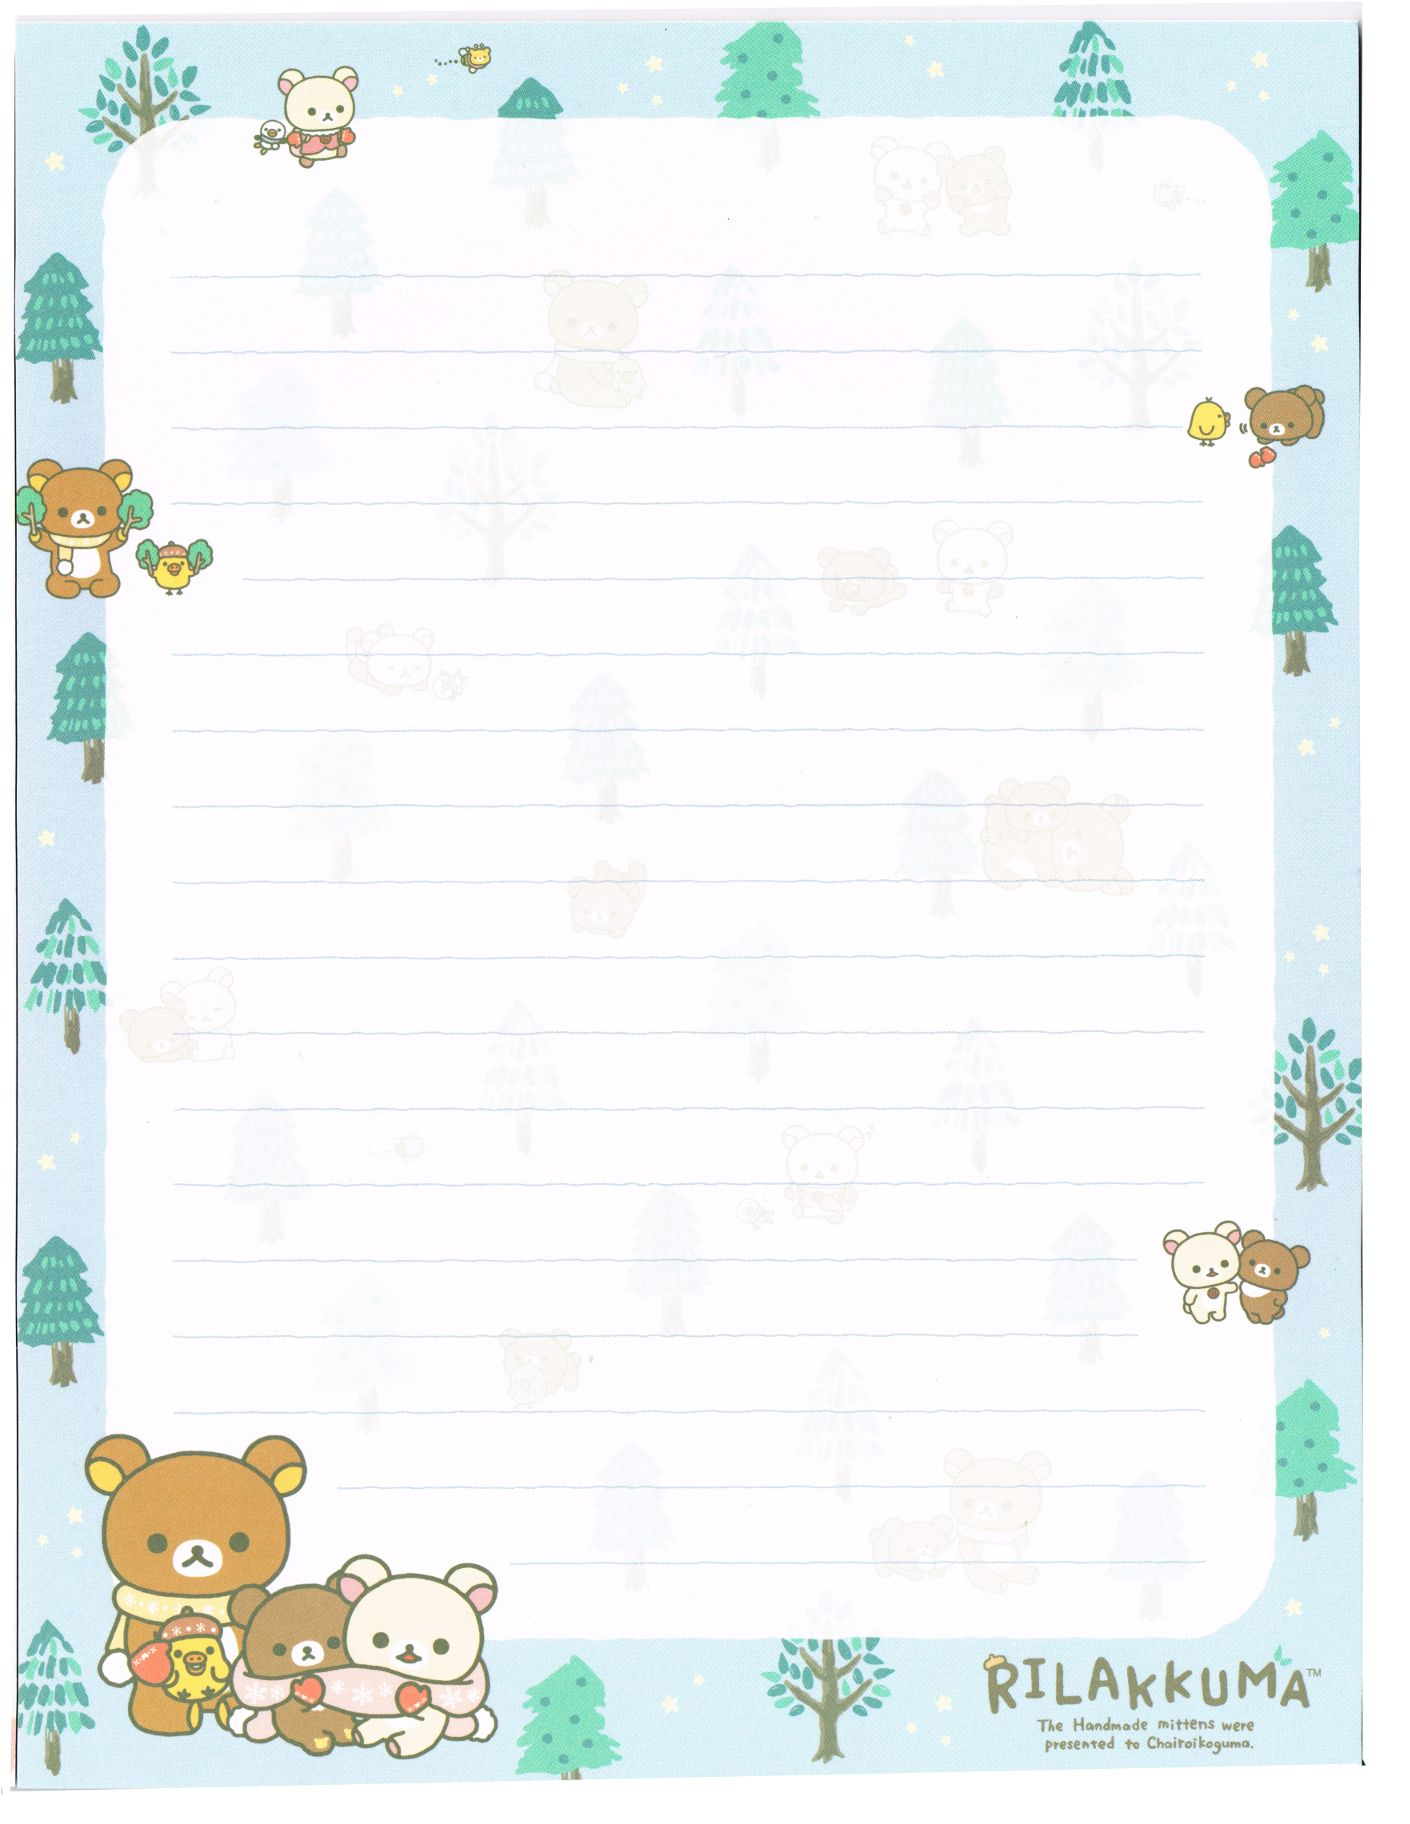 Free Printable Winter Nordic Forest Writing Memo Pad Sheet Rilakkuma チロリアン Writing Paper Printable Writing Paper Printable Free Free Paper Printables